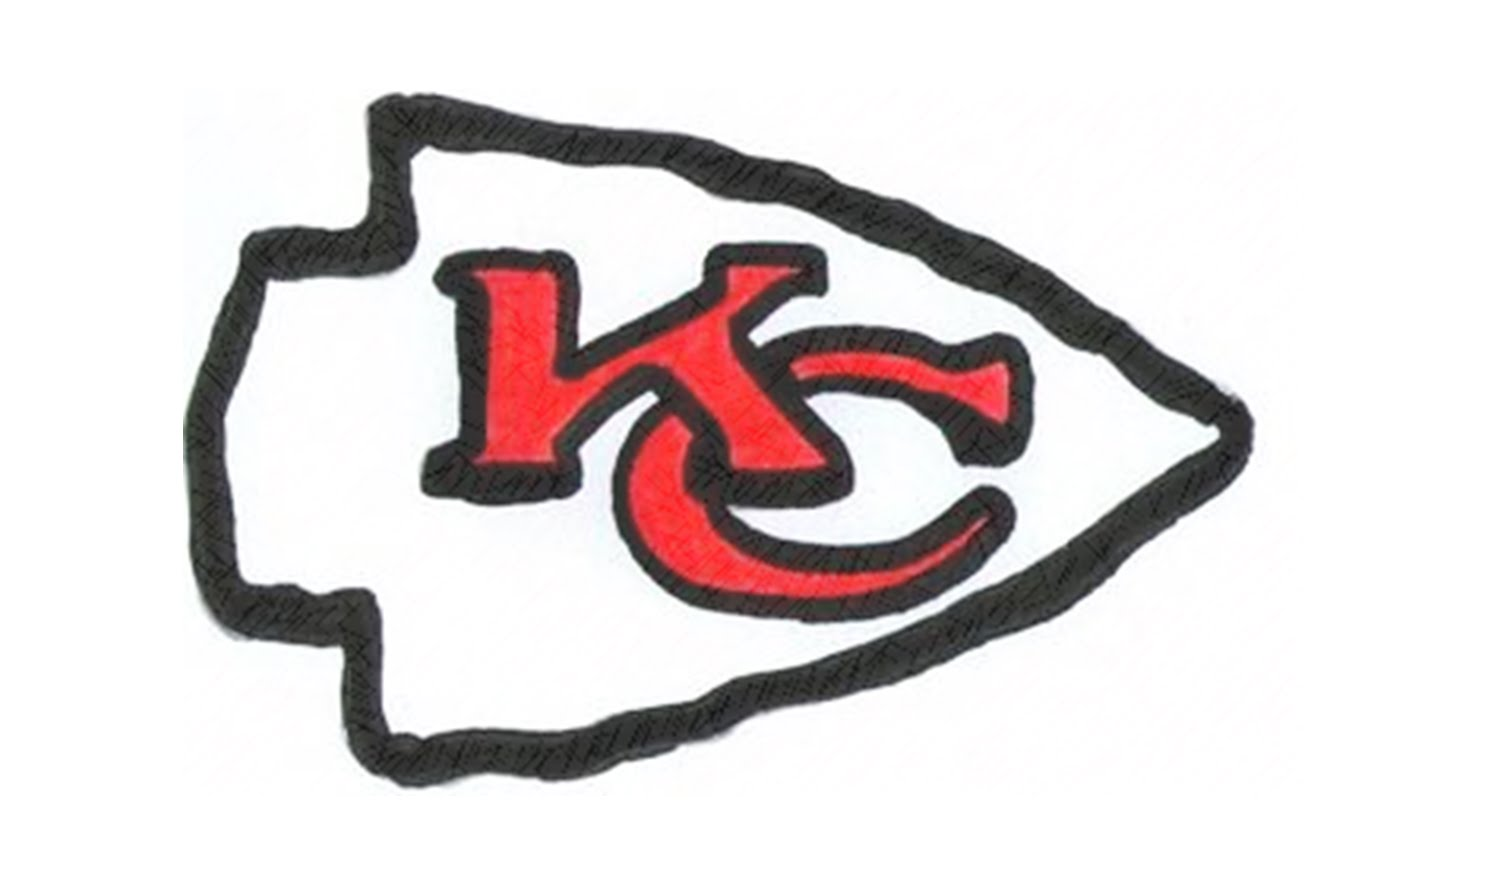 1500x885 How To Draw The Kansas City Chiefs Logo (Nfl)